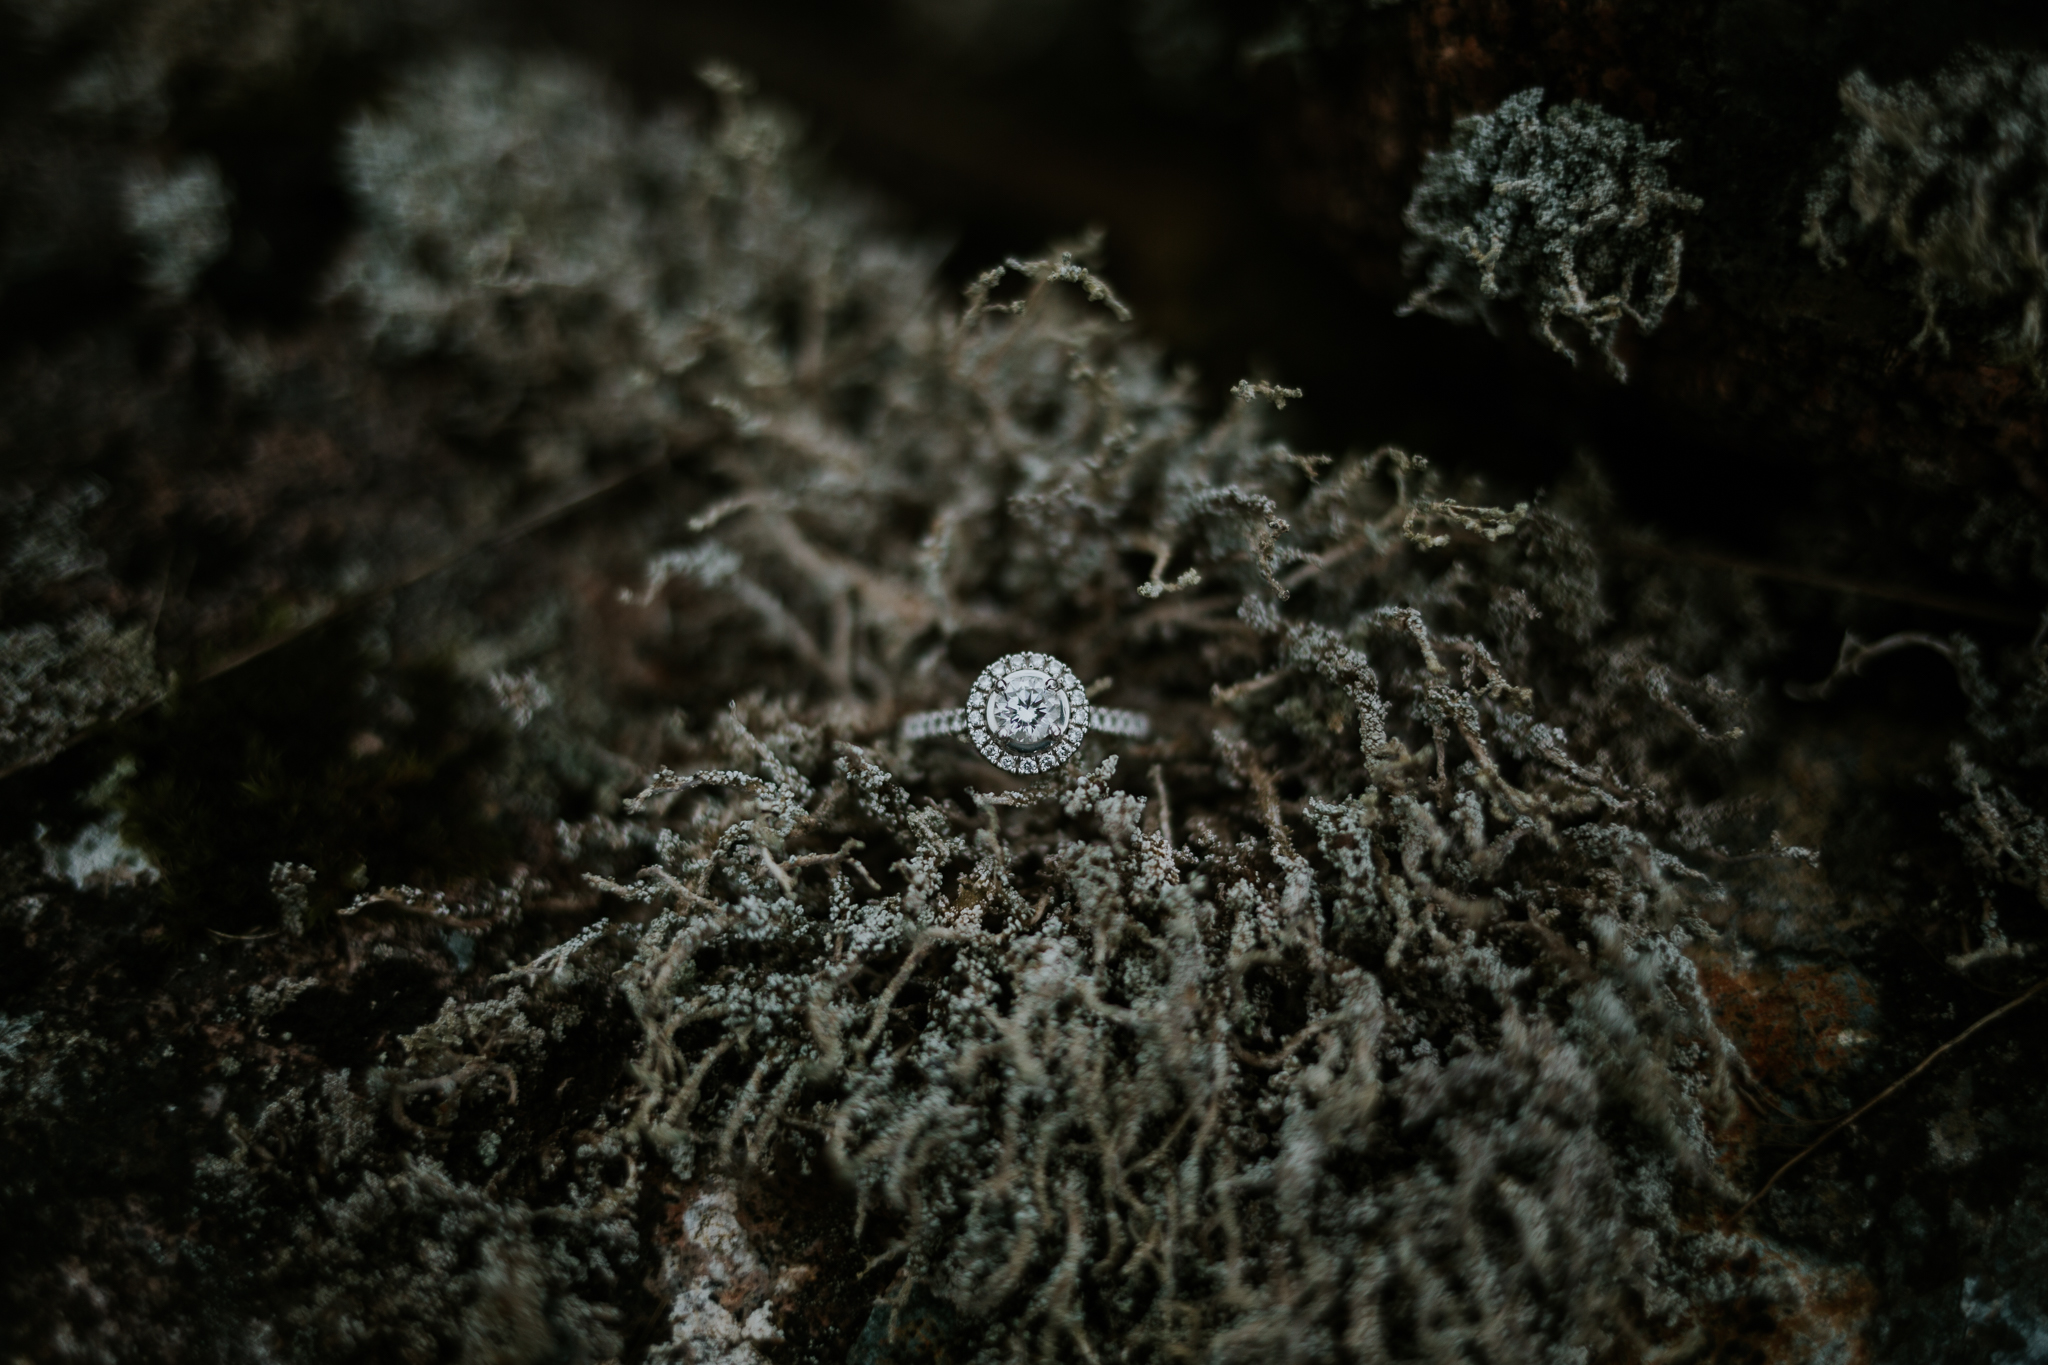 Engagement ring. Glencoe & Scottish Highlands Wedding, Engagement and Elopement Photographer